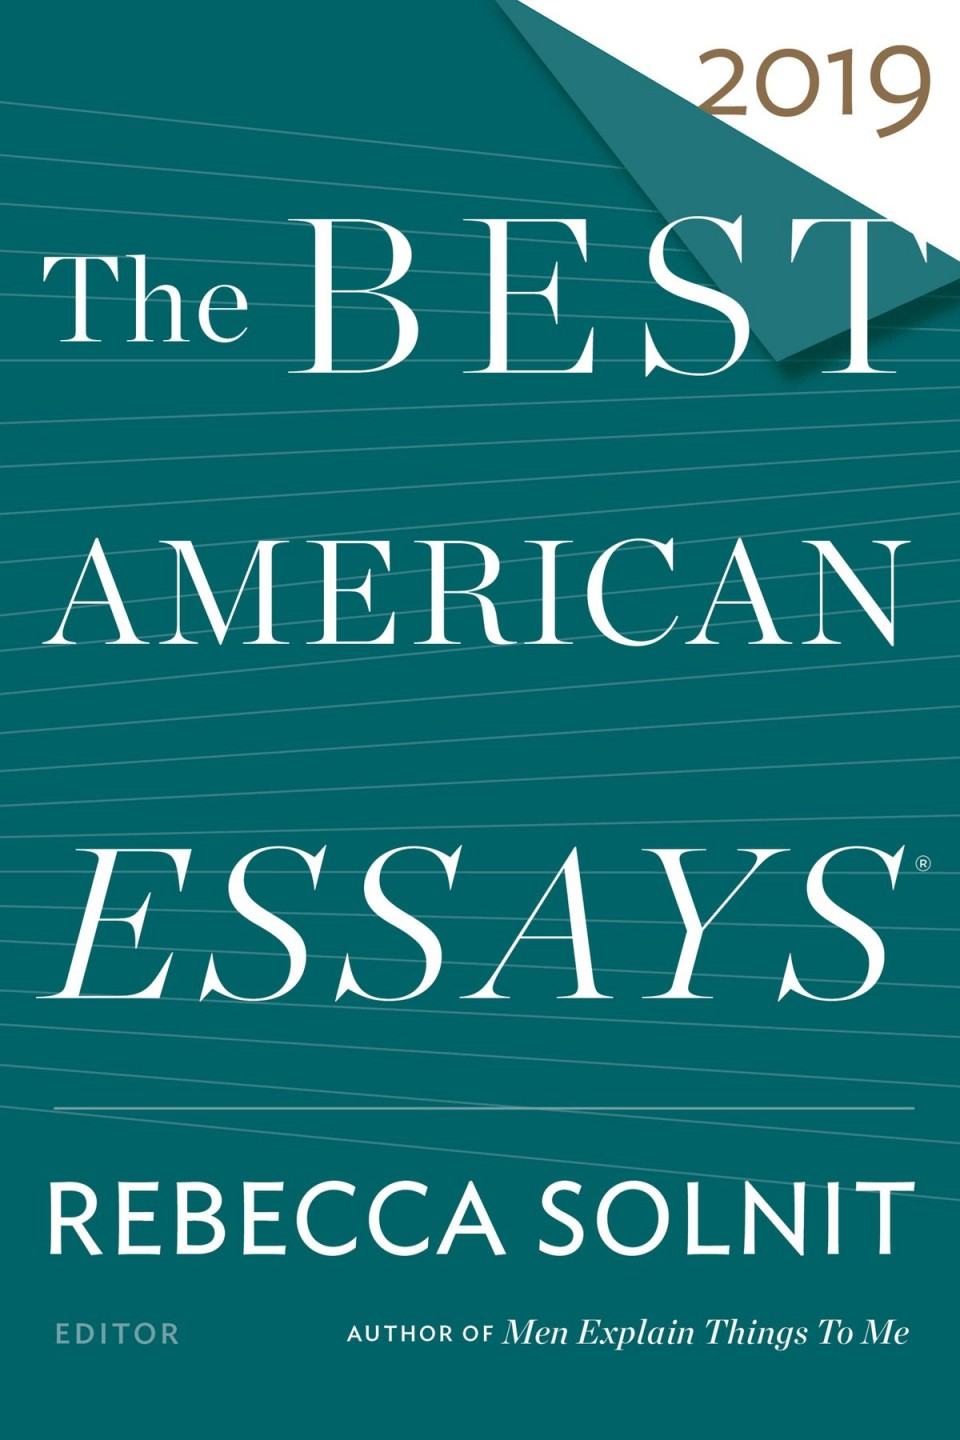 007 The Best American Essays Essay Wonderful 2018 Pdf 2017 Table Of Contents 2015 Free 960